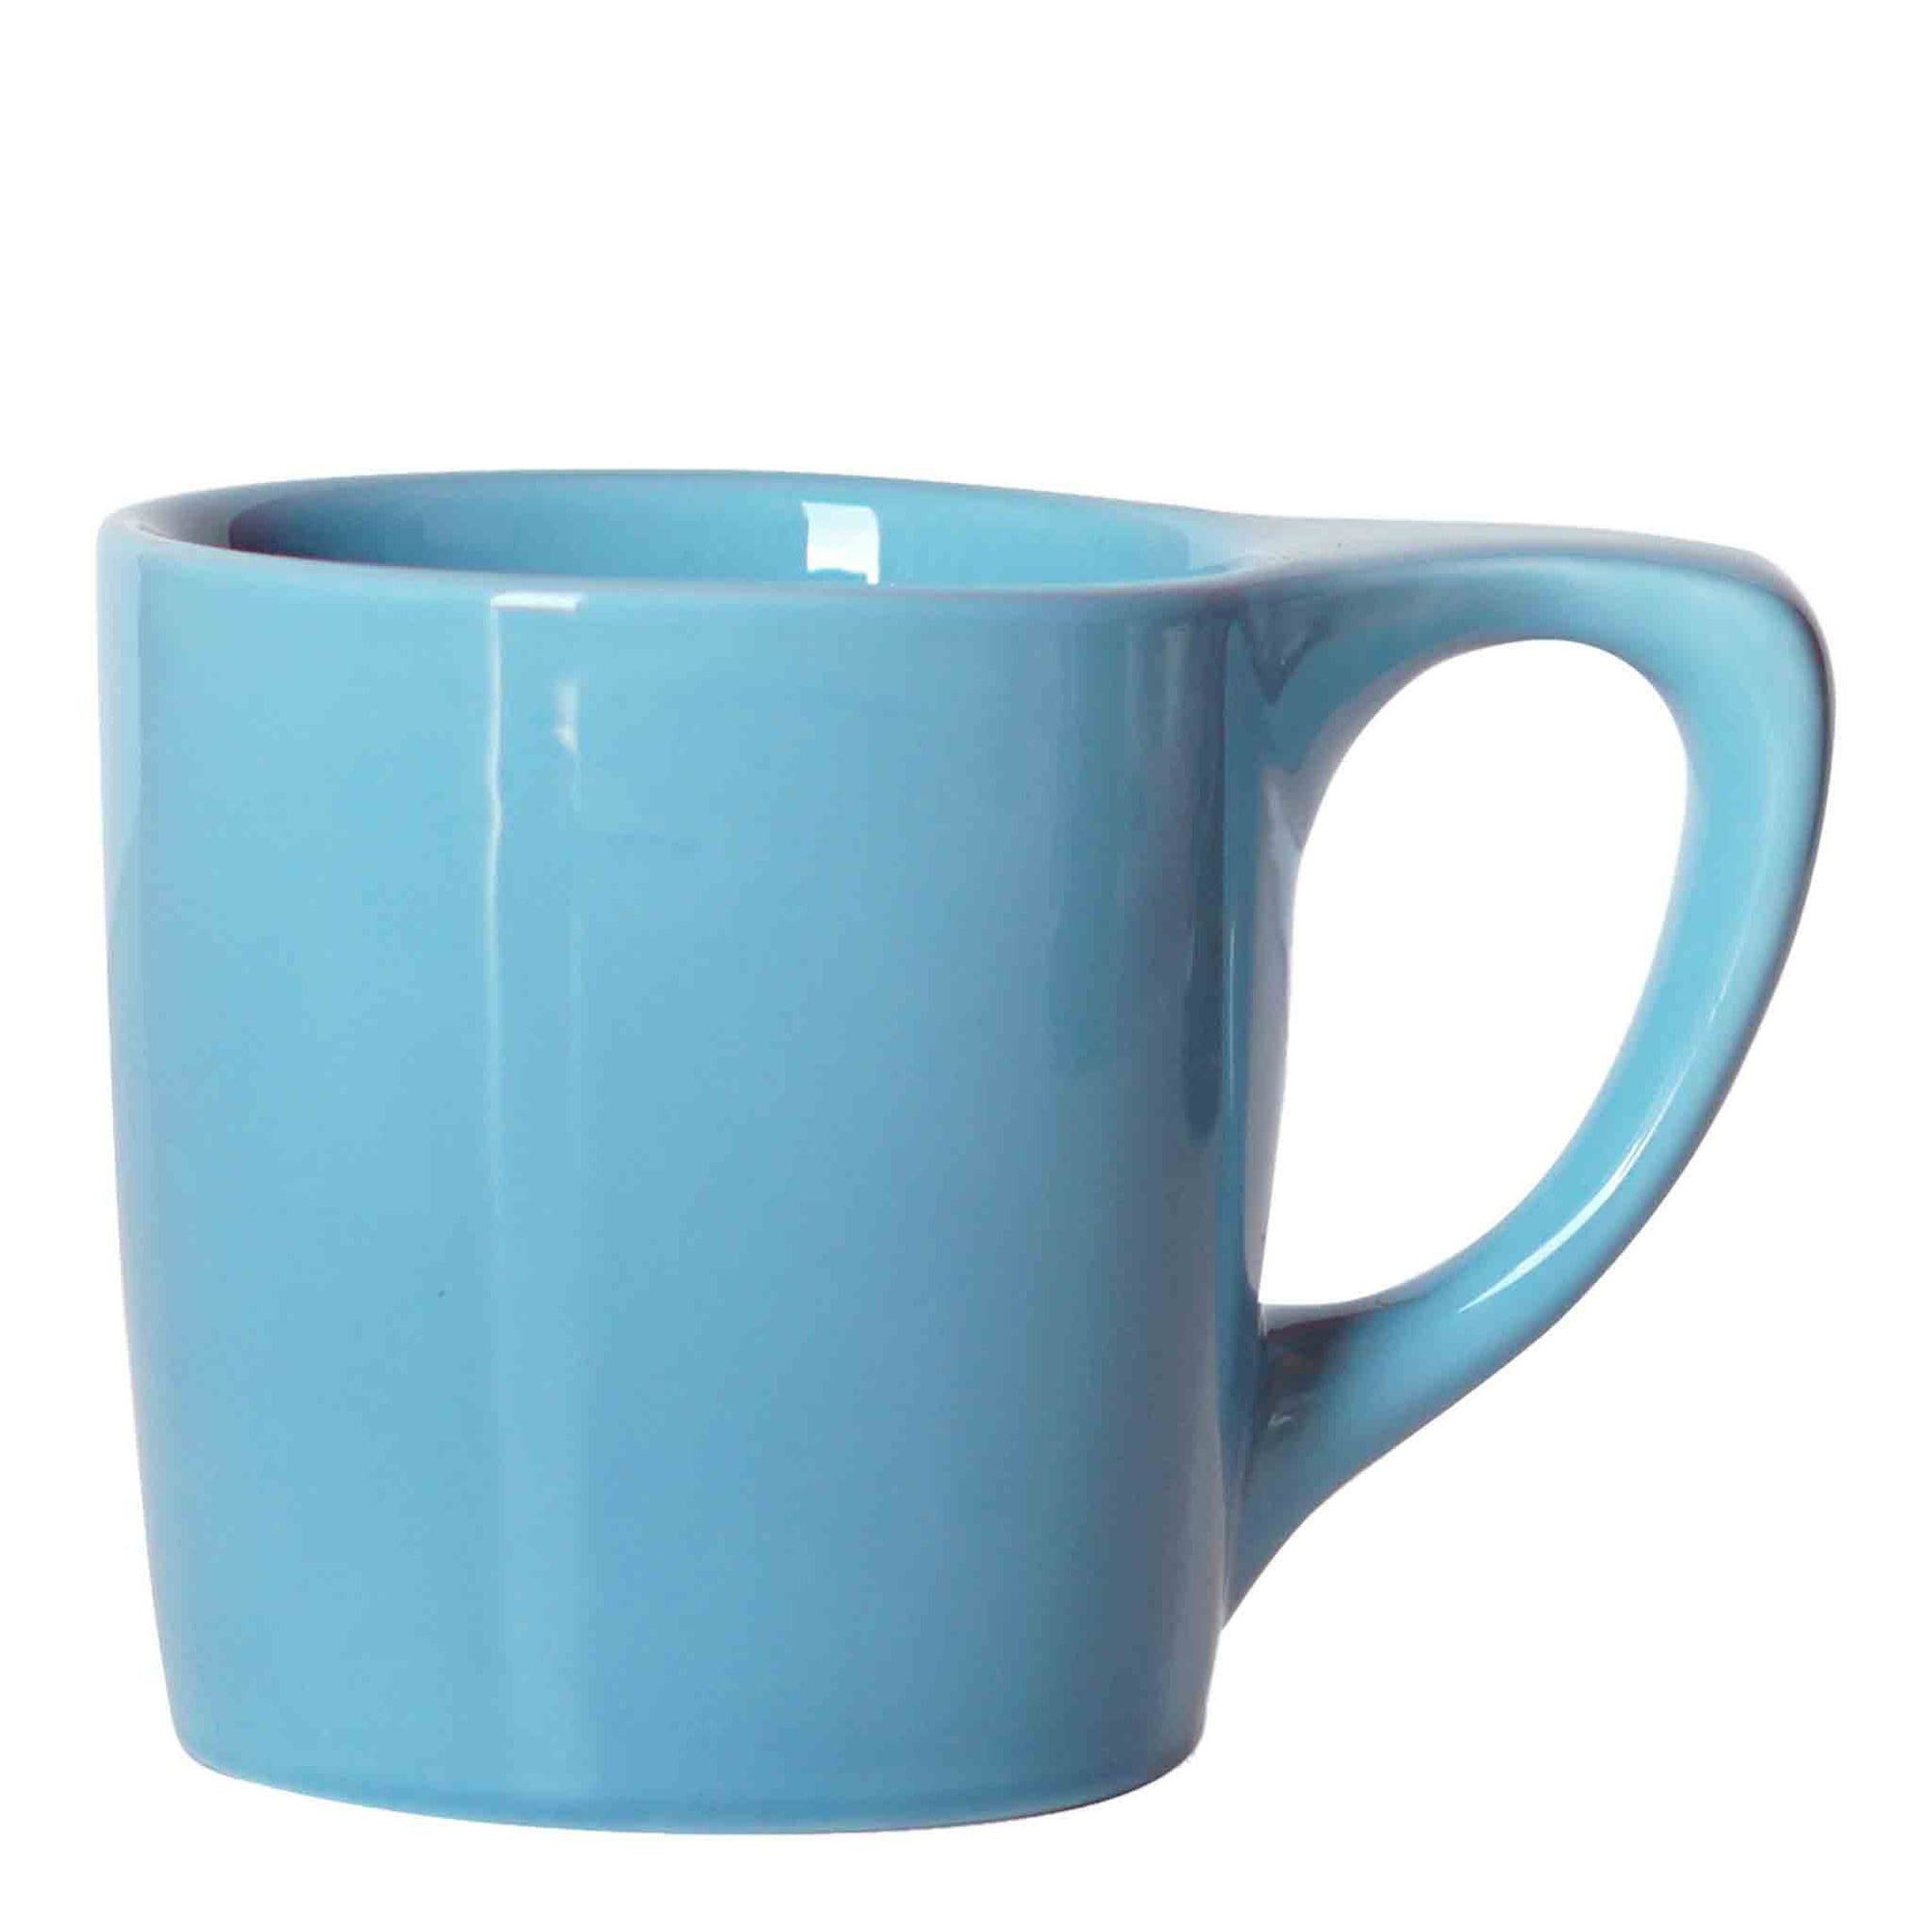 NN Mug Blue 10oz/30cl - Espresso Gear